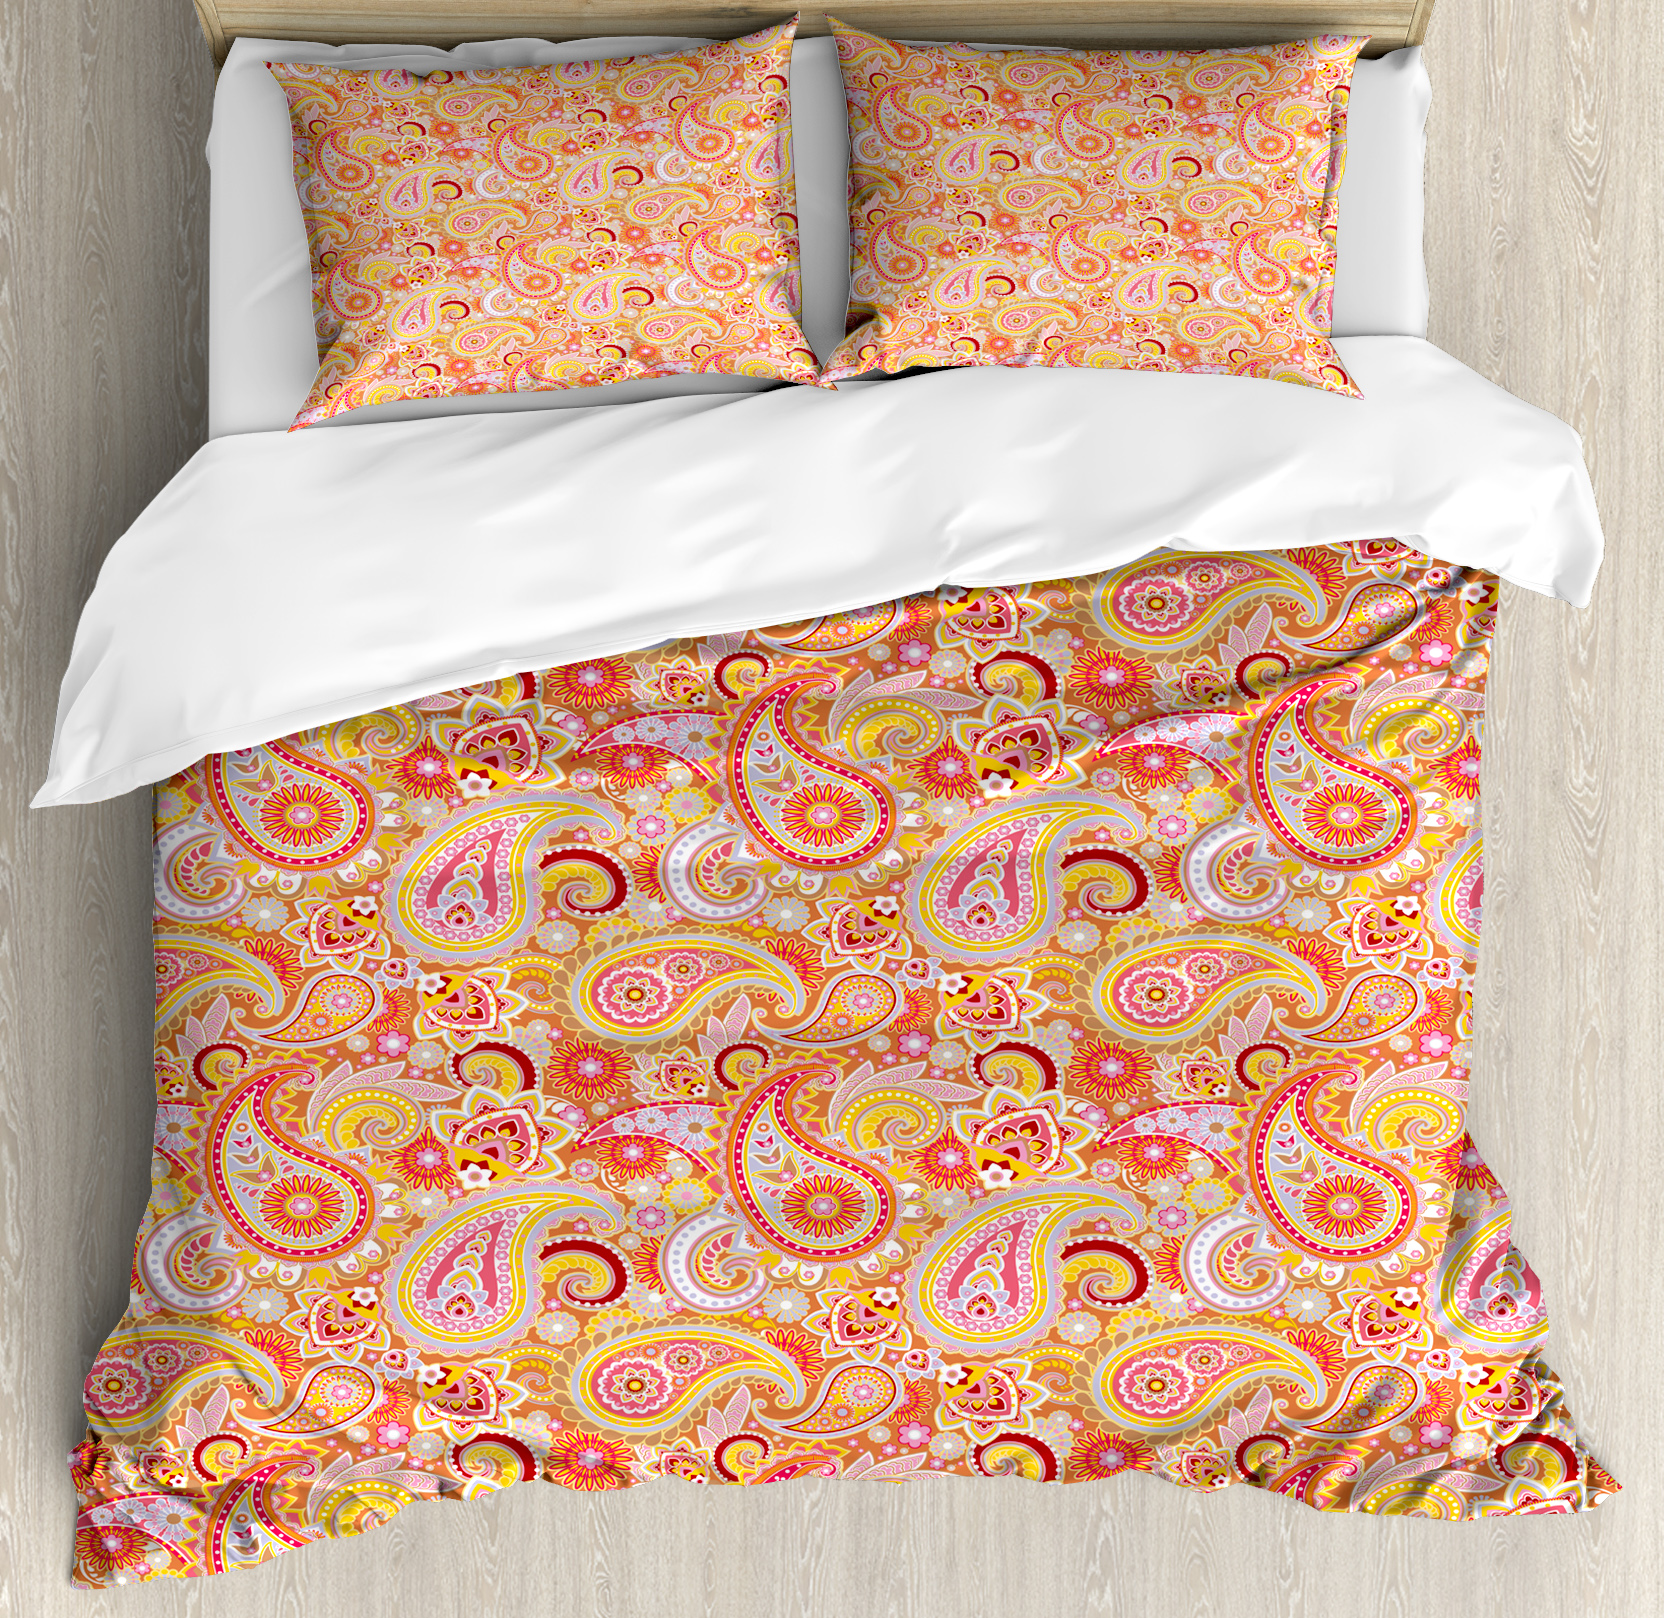 Orange King Size Duvet Cover Set, Asian Design Elements Traditional Paisley Floral Pattern Swirls Leaves Ethnic Motif, Decorative 3 Piece Bedding Set with 2 Pillow Shams, Multicolor, by Ambesonne